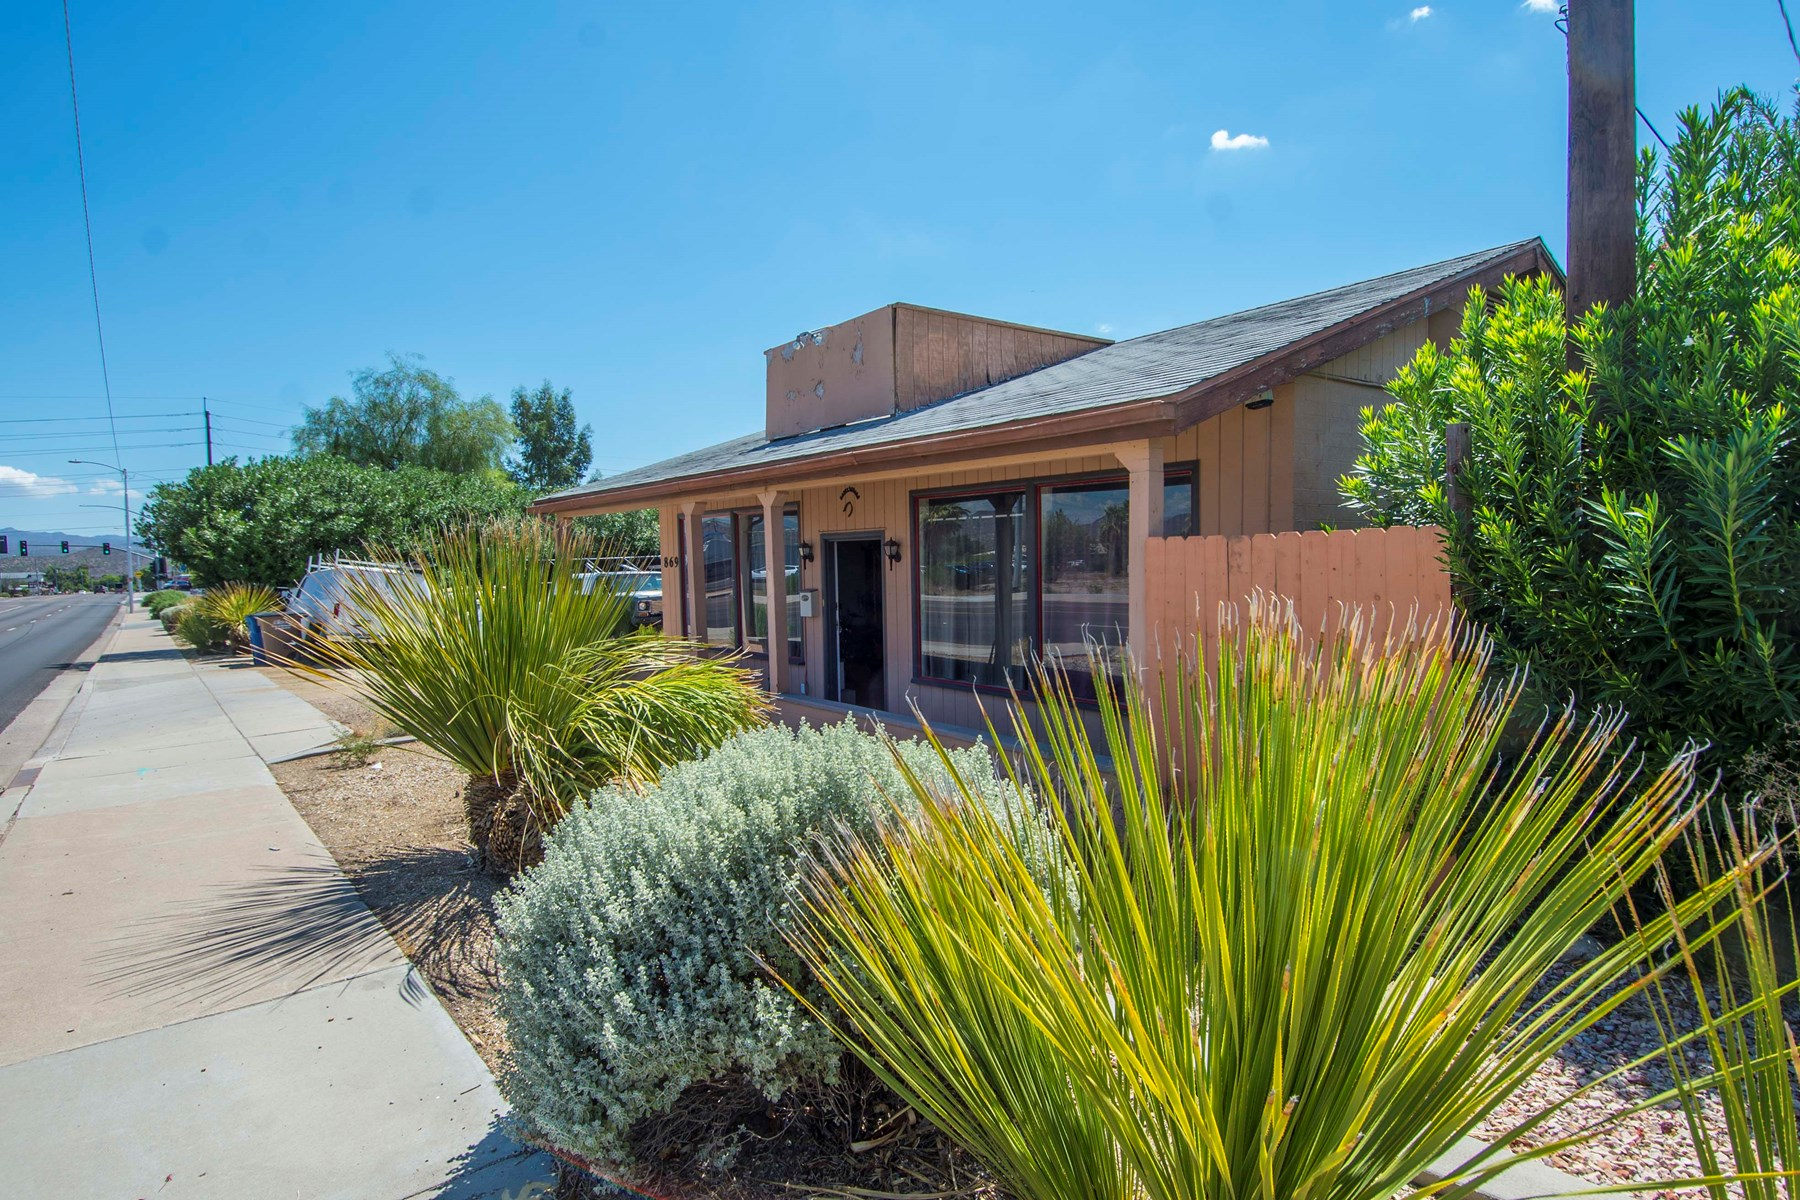 Commercial and Residential Building for Sale Wickenburg AZ